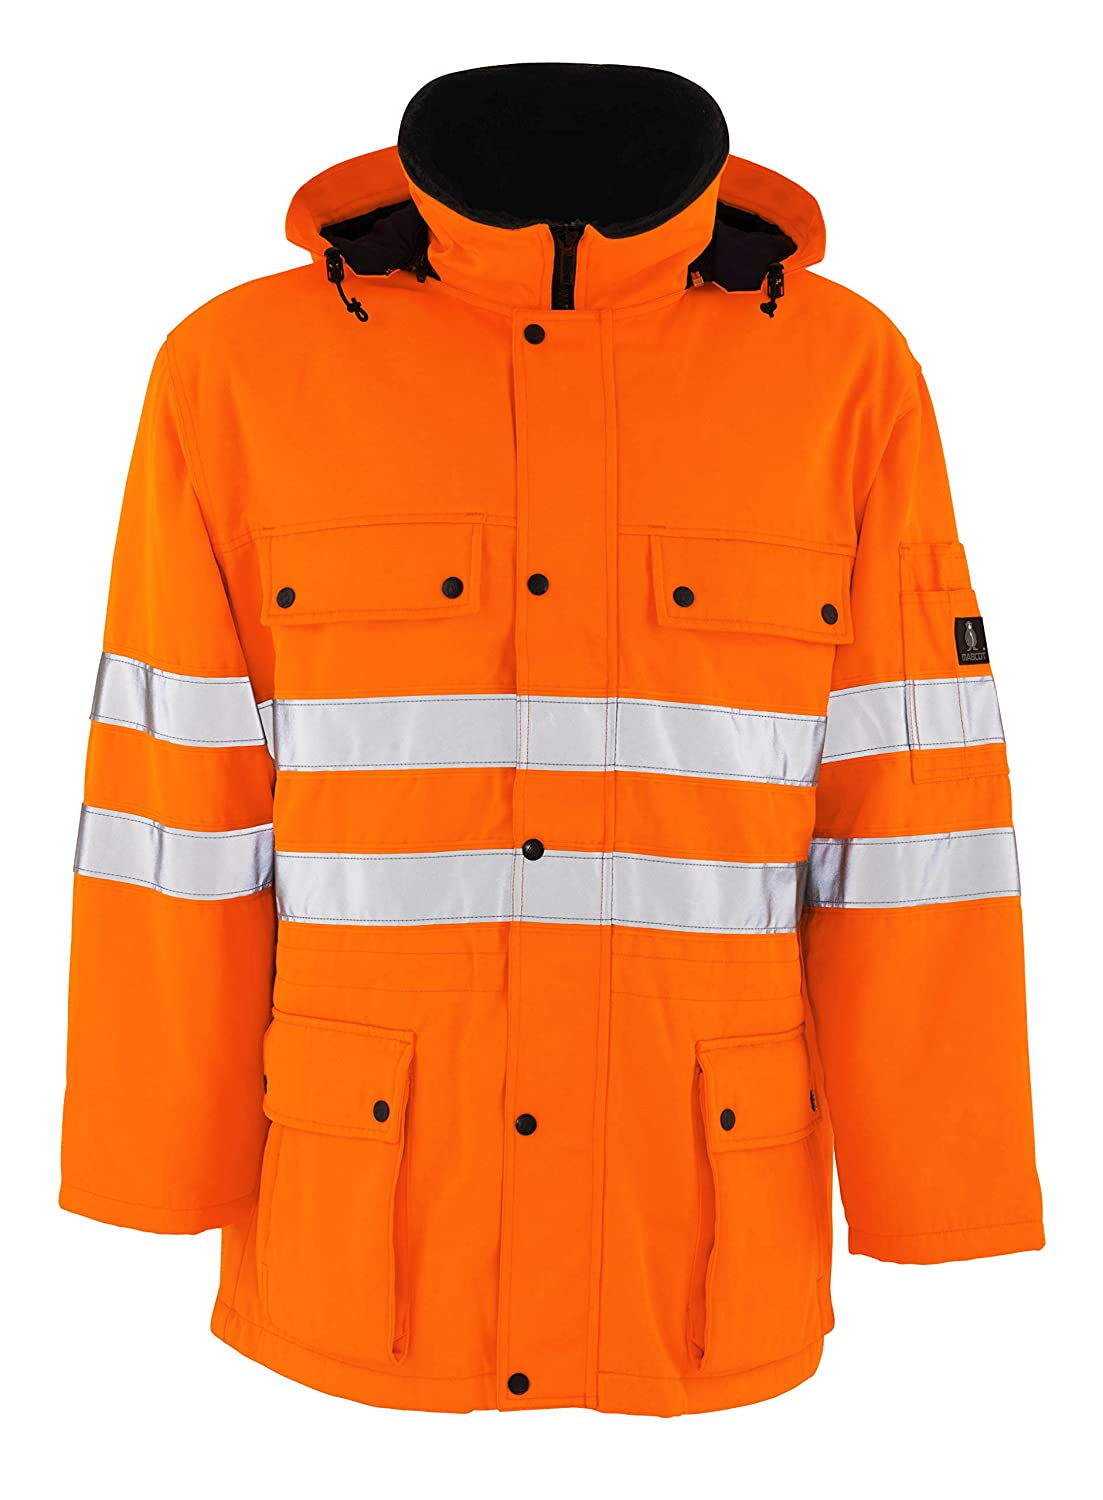 Mascot 00510660144XL Quebec  Parka, 4XLarge, orange